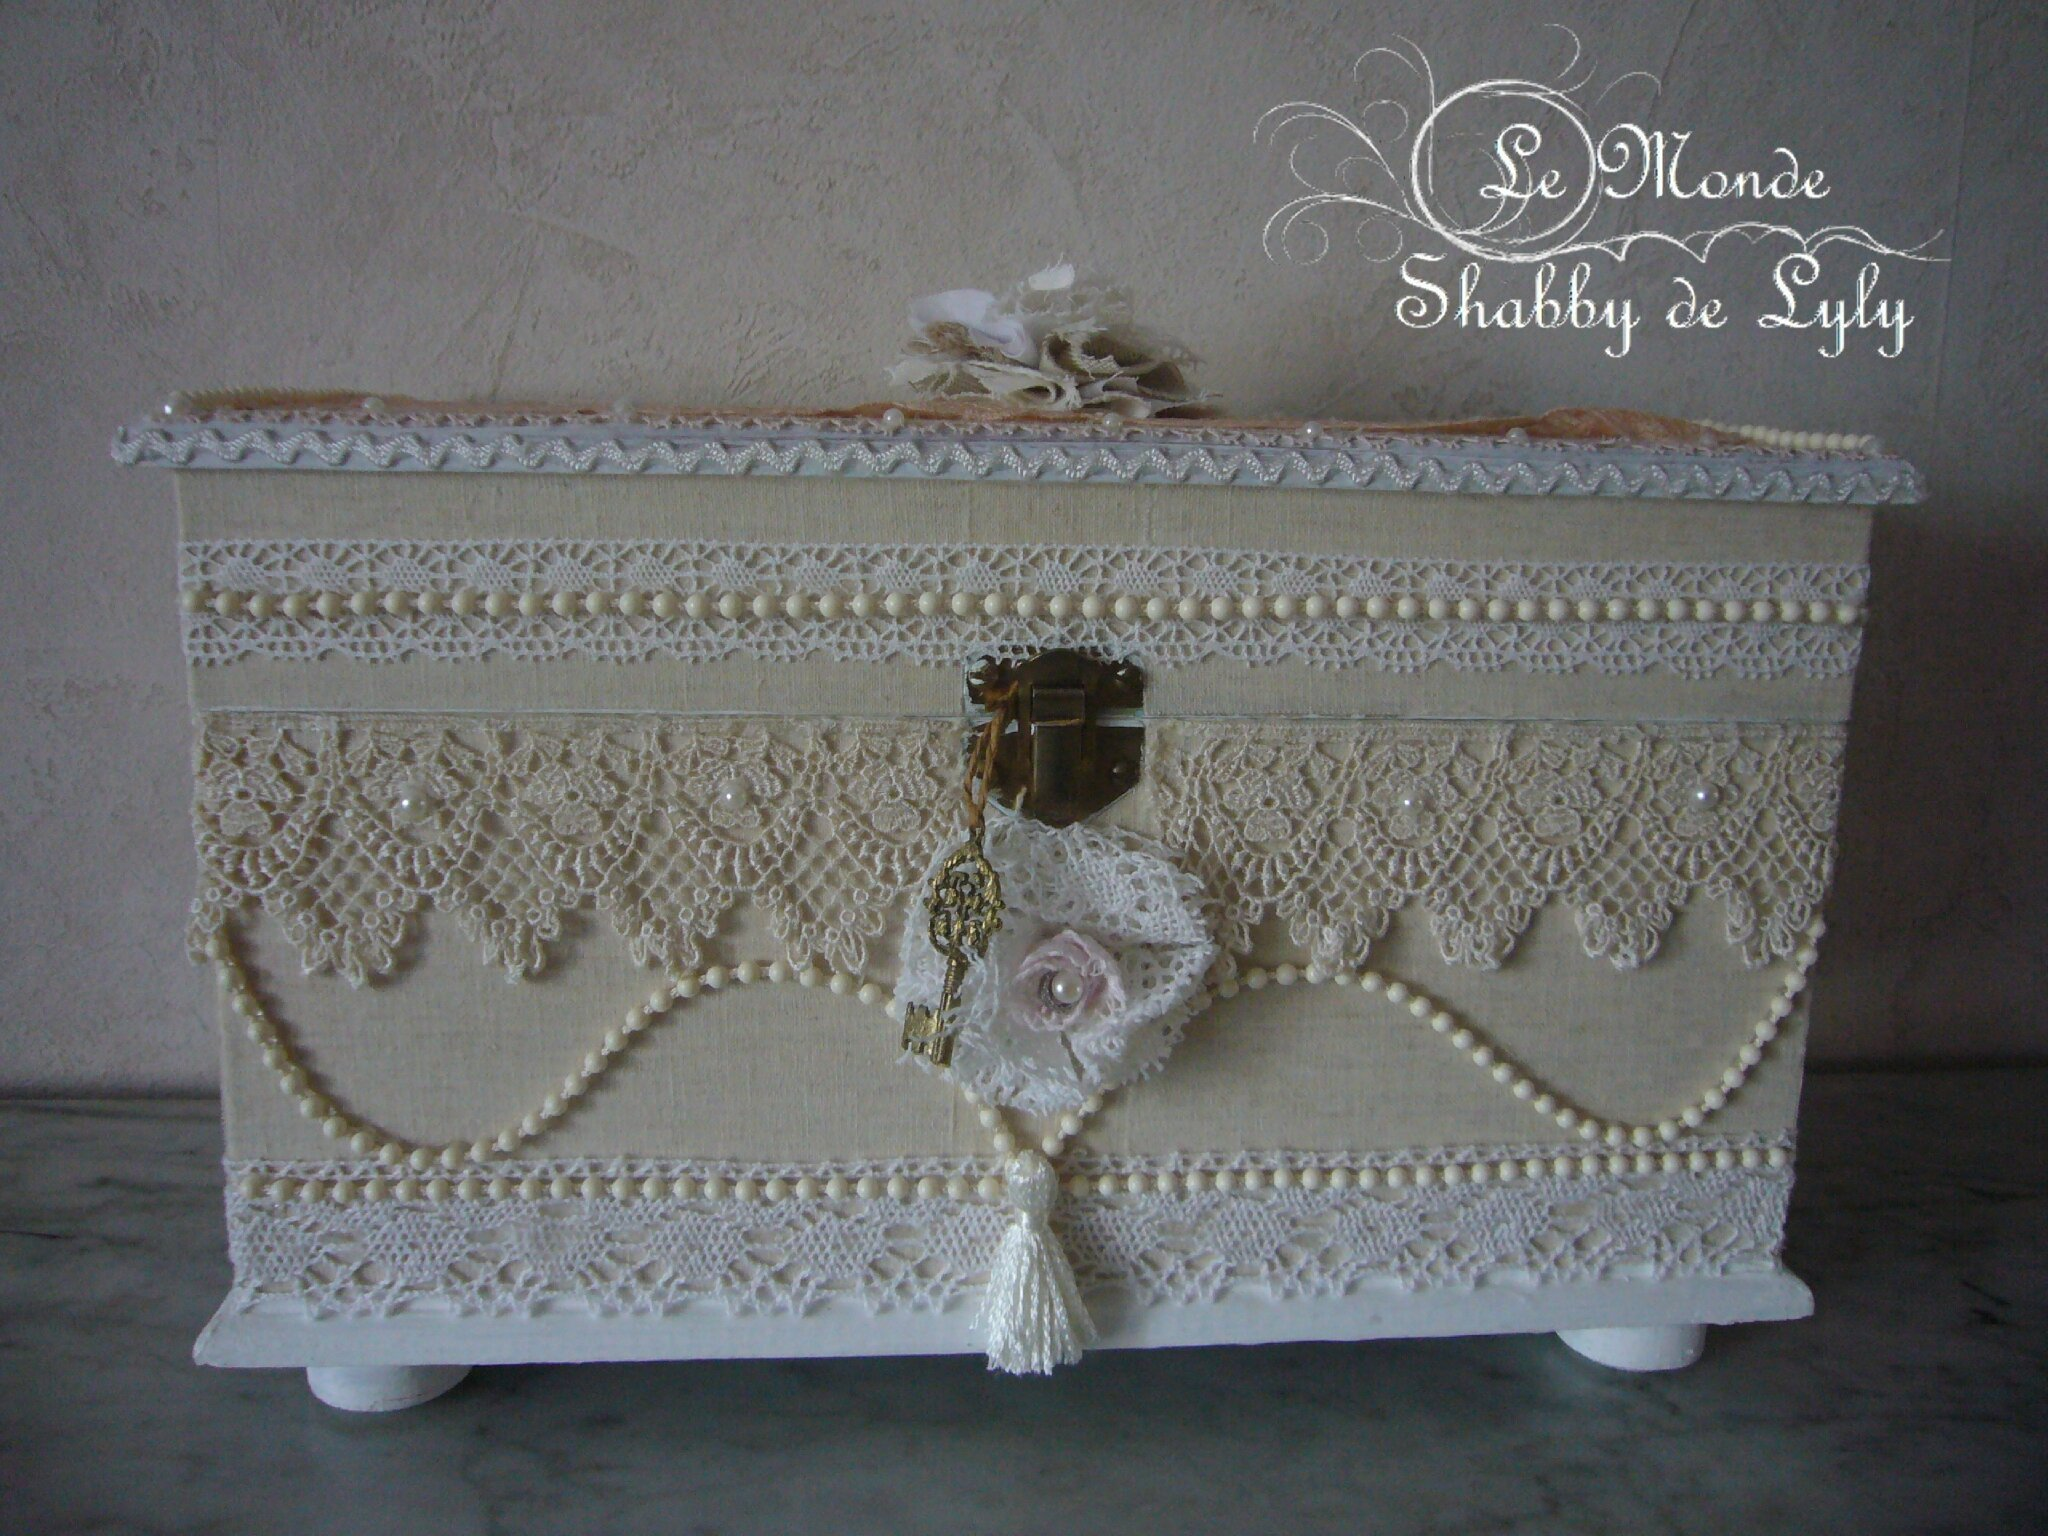 134 deco shabby en ligne mes id es d co shabby relooking